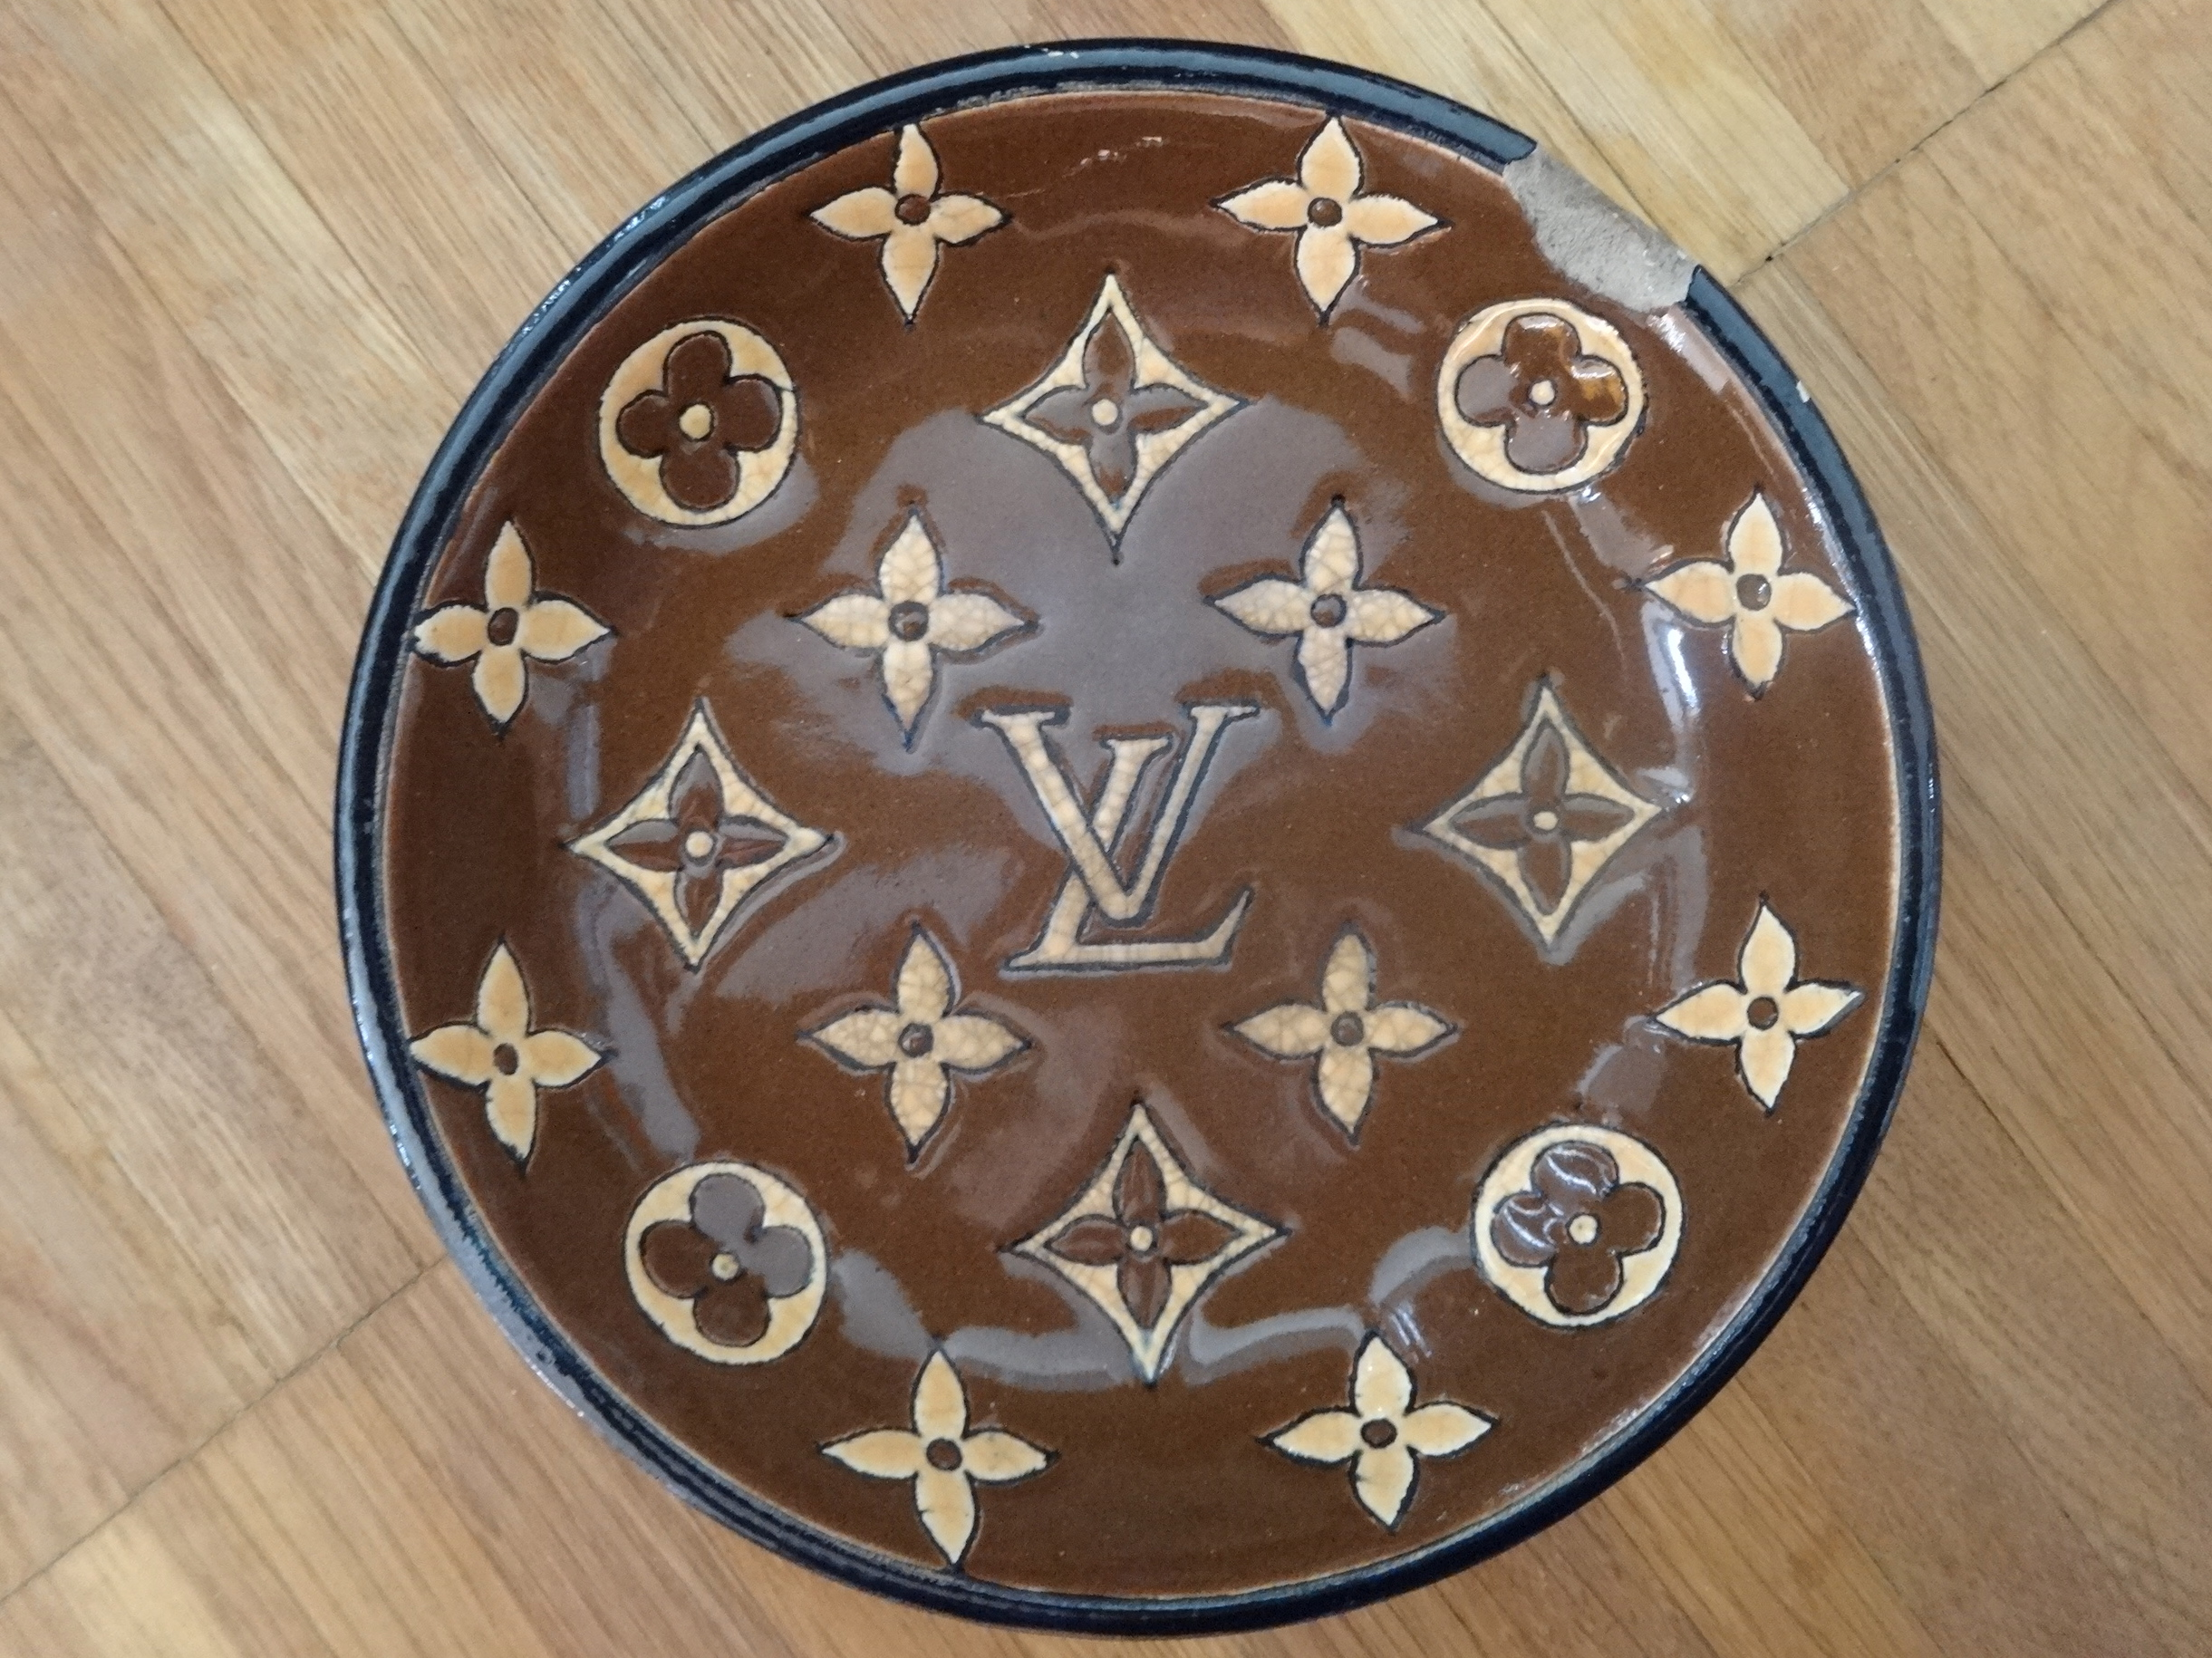 Louis Vuitton ashtray by Emaux de Longwy